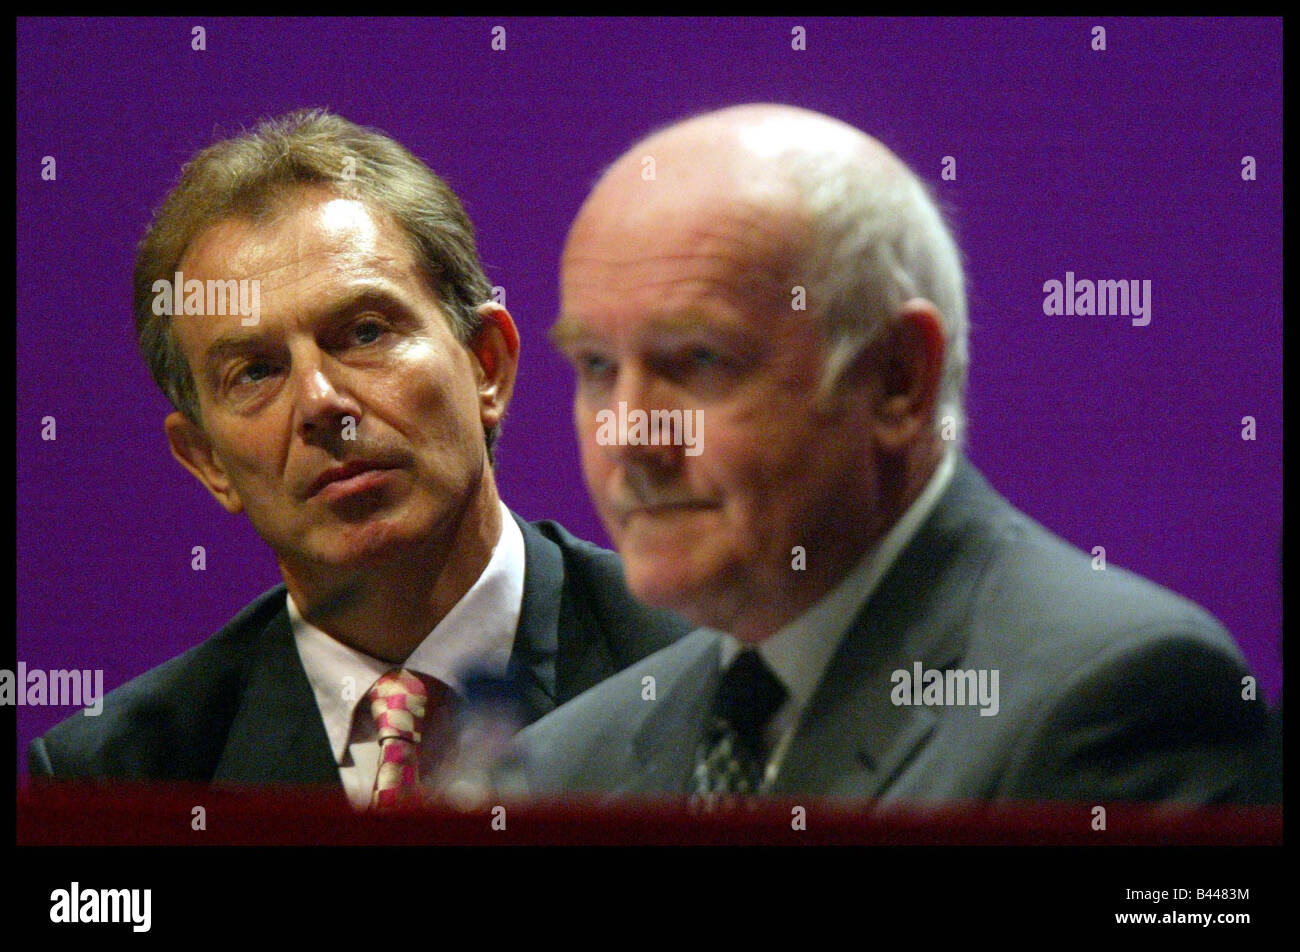 Labours Health Secretary John Reid speaking Tony Blair in backround at the Labour Party Conference Bournemouth October - Stock Image